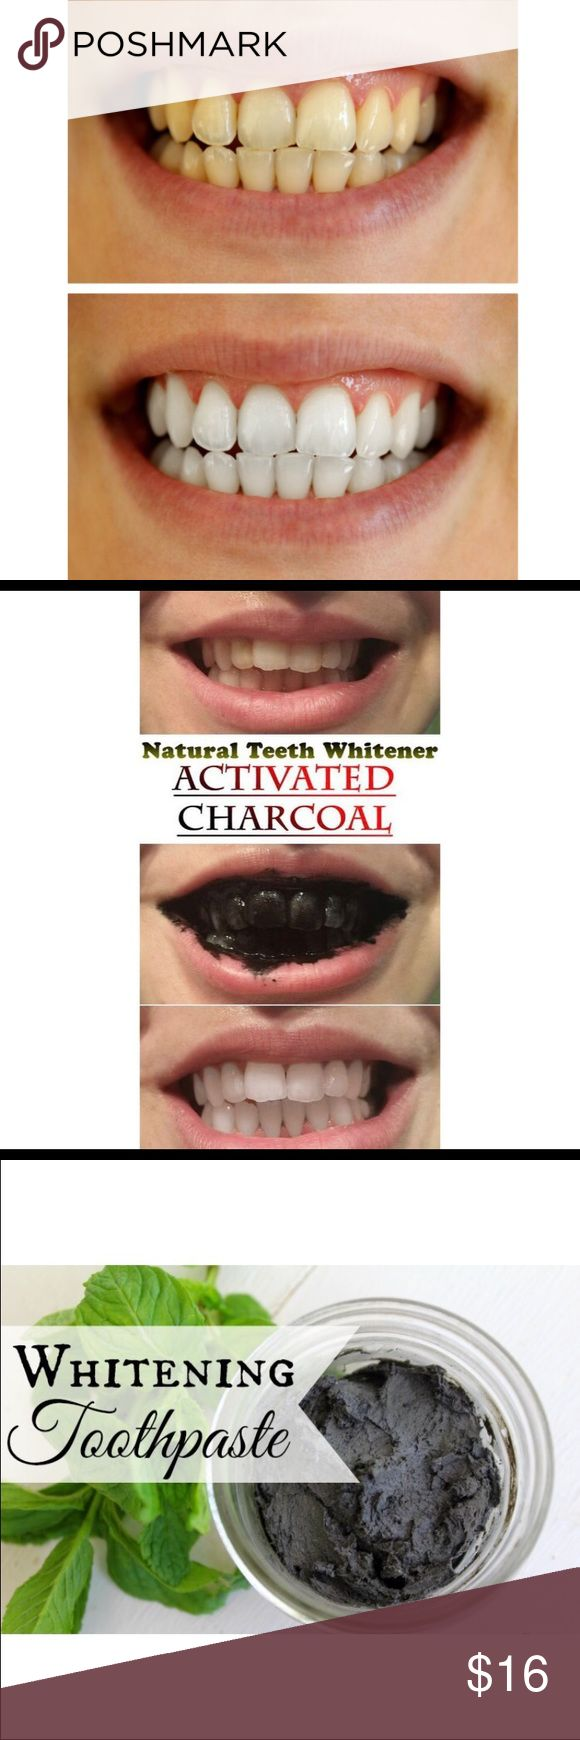 GET RID OF YELLOW STAINS ON TEETH, 100% ORGANIC!! 100% ORGANIC & IT REALLY WORKS!  Our Activated Charcoal and Bentonite Clay toothpaste works to WHITEN teeth, freshen breath, and protect your gums.  Unfortunately, majority of commercial toothpastes (especially the whitening variety) are filled with dangerous chemicals and toxins that slowly erode the tooth enamel & gums.  Ingredients: Activated Charcoal, Bentonite Clay, Coconut Oil, Sea Salt, Purified Water, Pure Therapeutic Mint Essential…